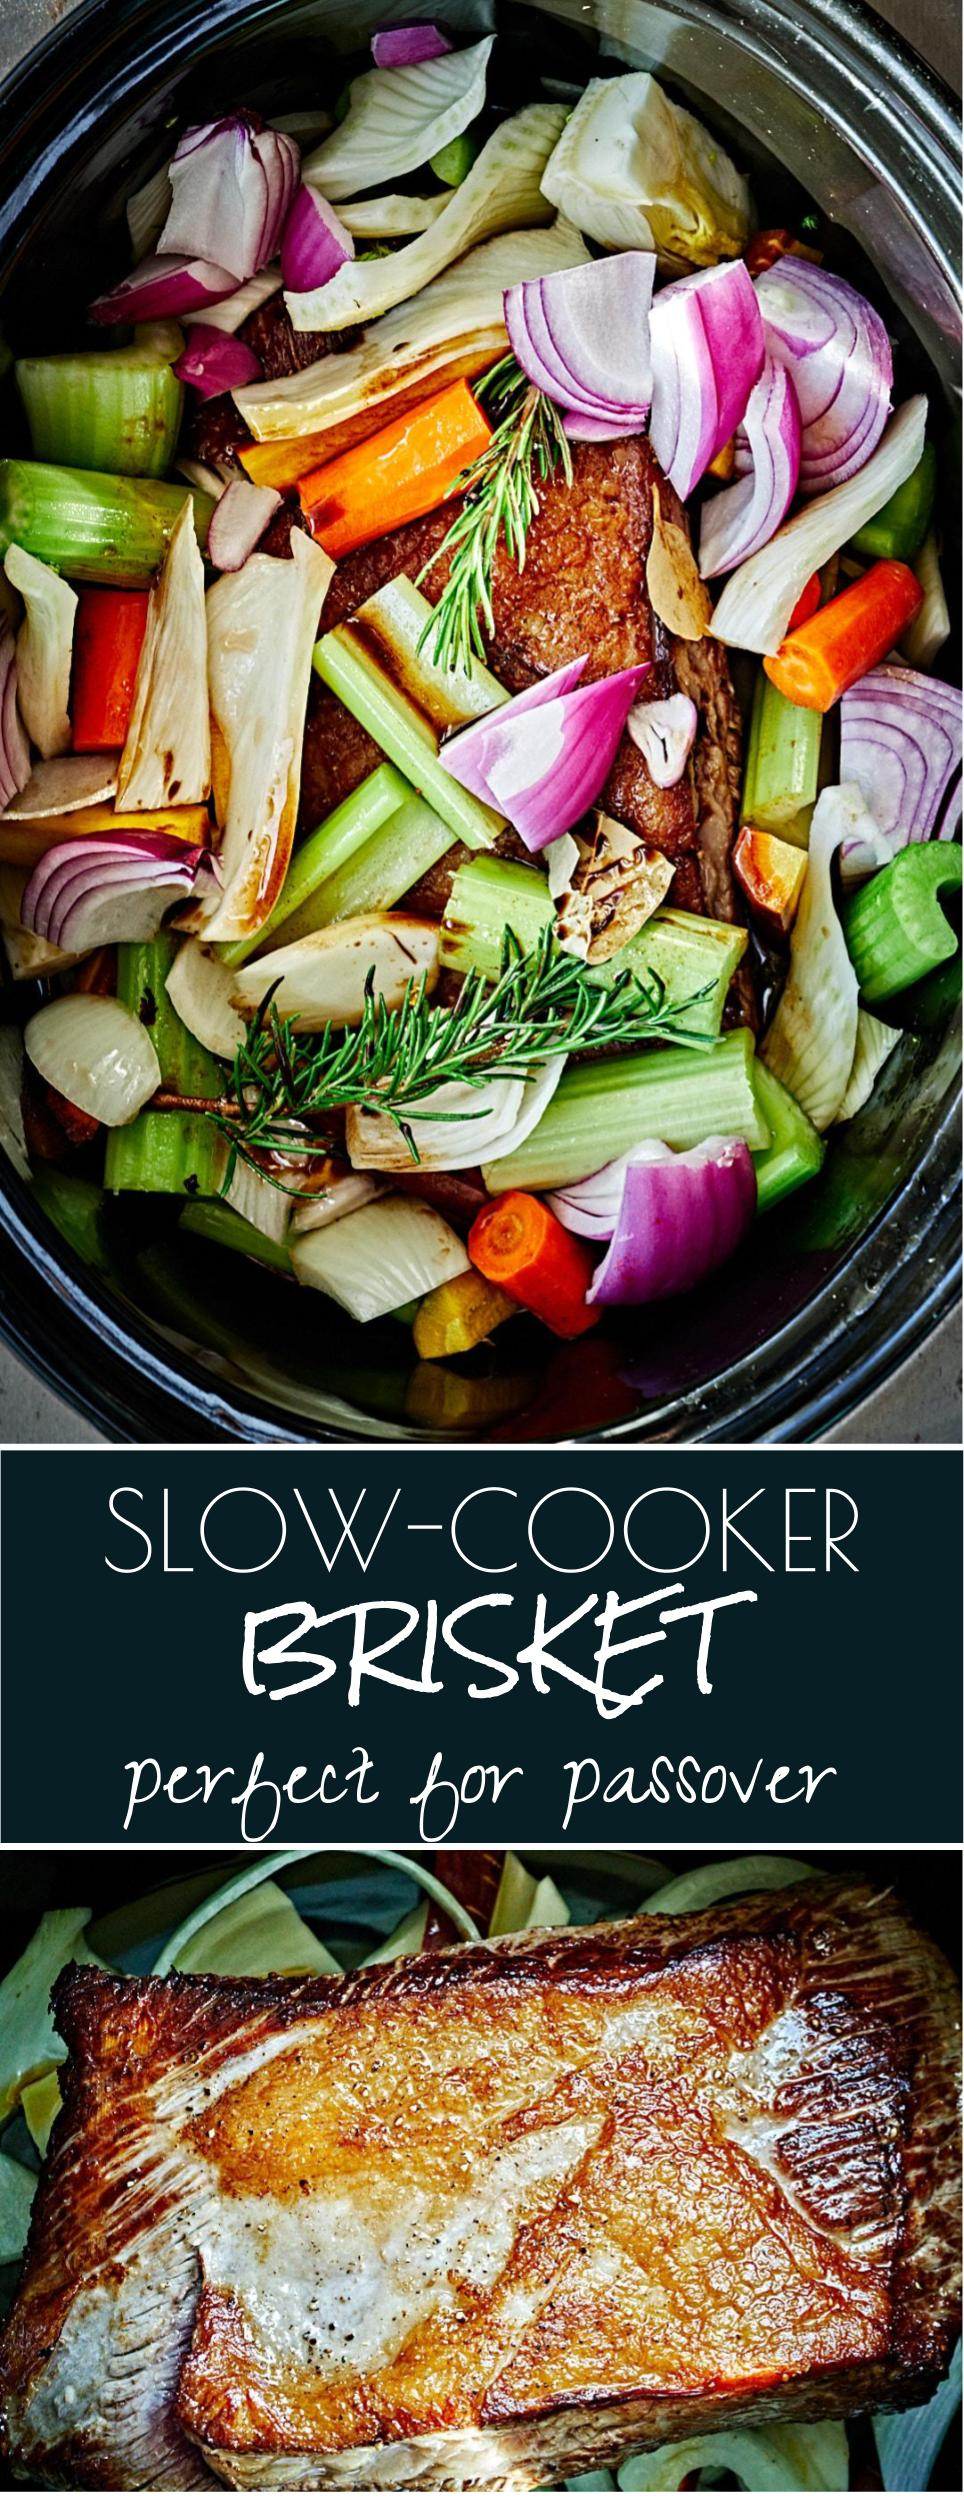 Simple Slow-Cooker Passover Brisket | Proportional Plate | Looking for an incredibly simple slow-cooker passover brisket? Well, here you go! It's simple, delicious, and even better in sandwiches the next day.